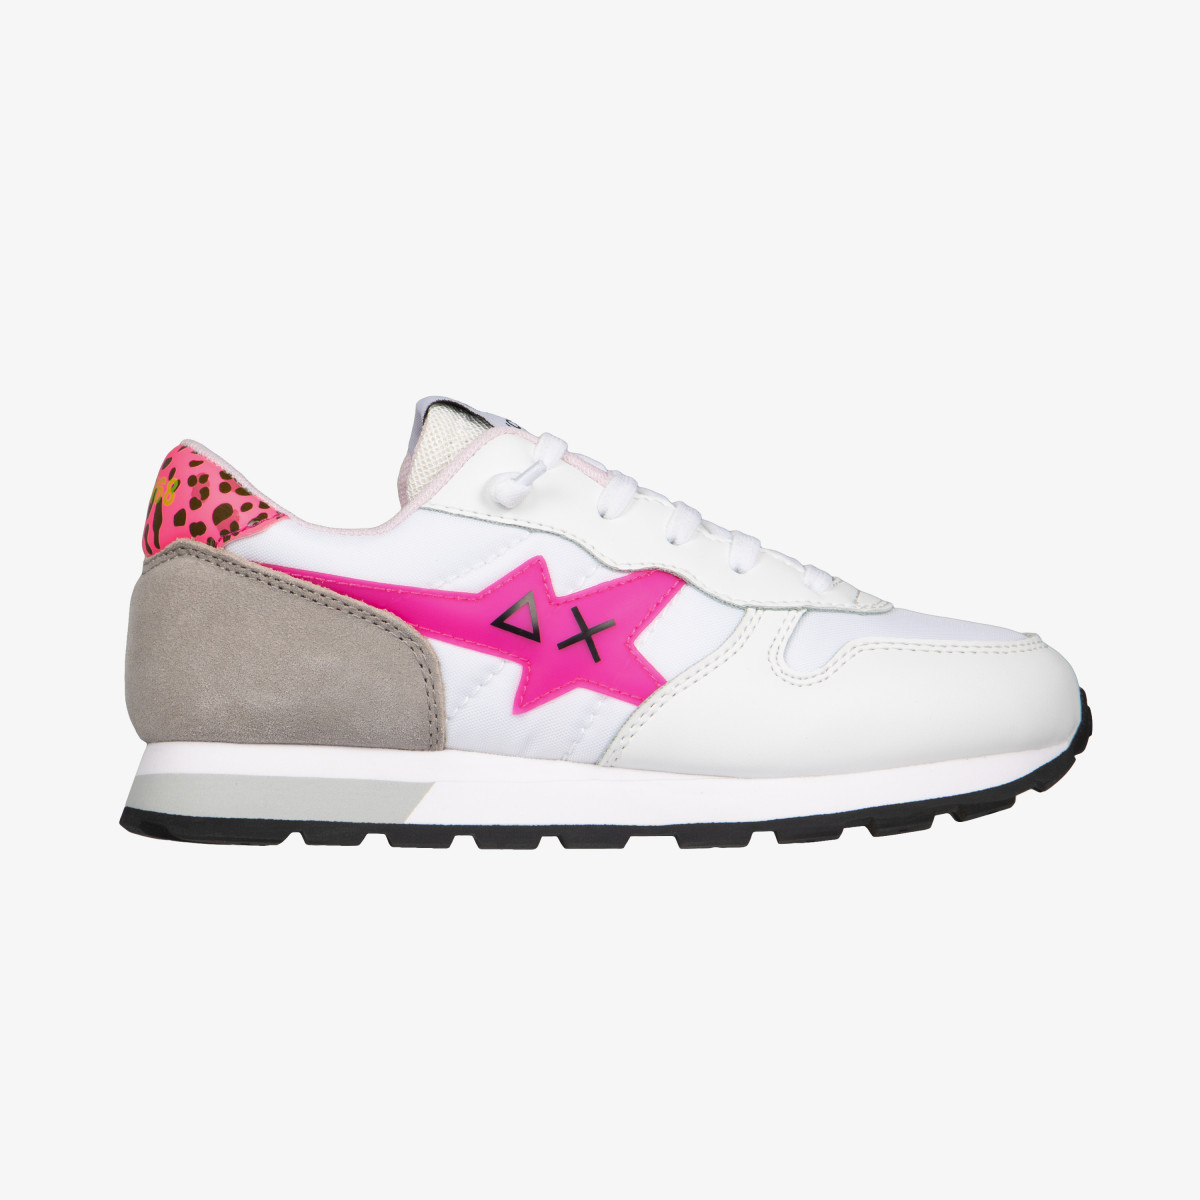 GIRL'S ALLY FLUO WHITE/FUXIA FLUO